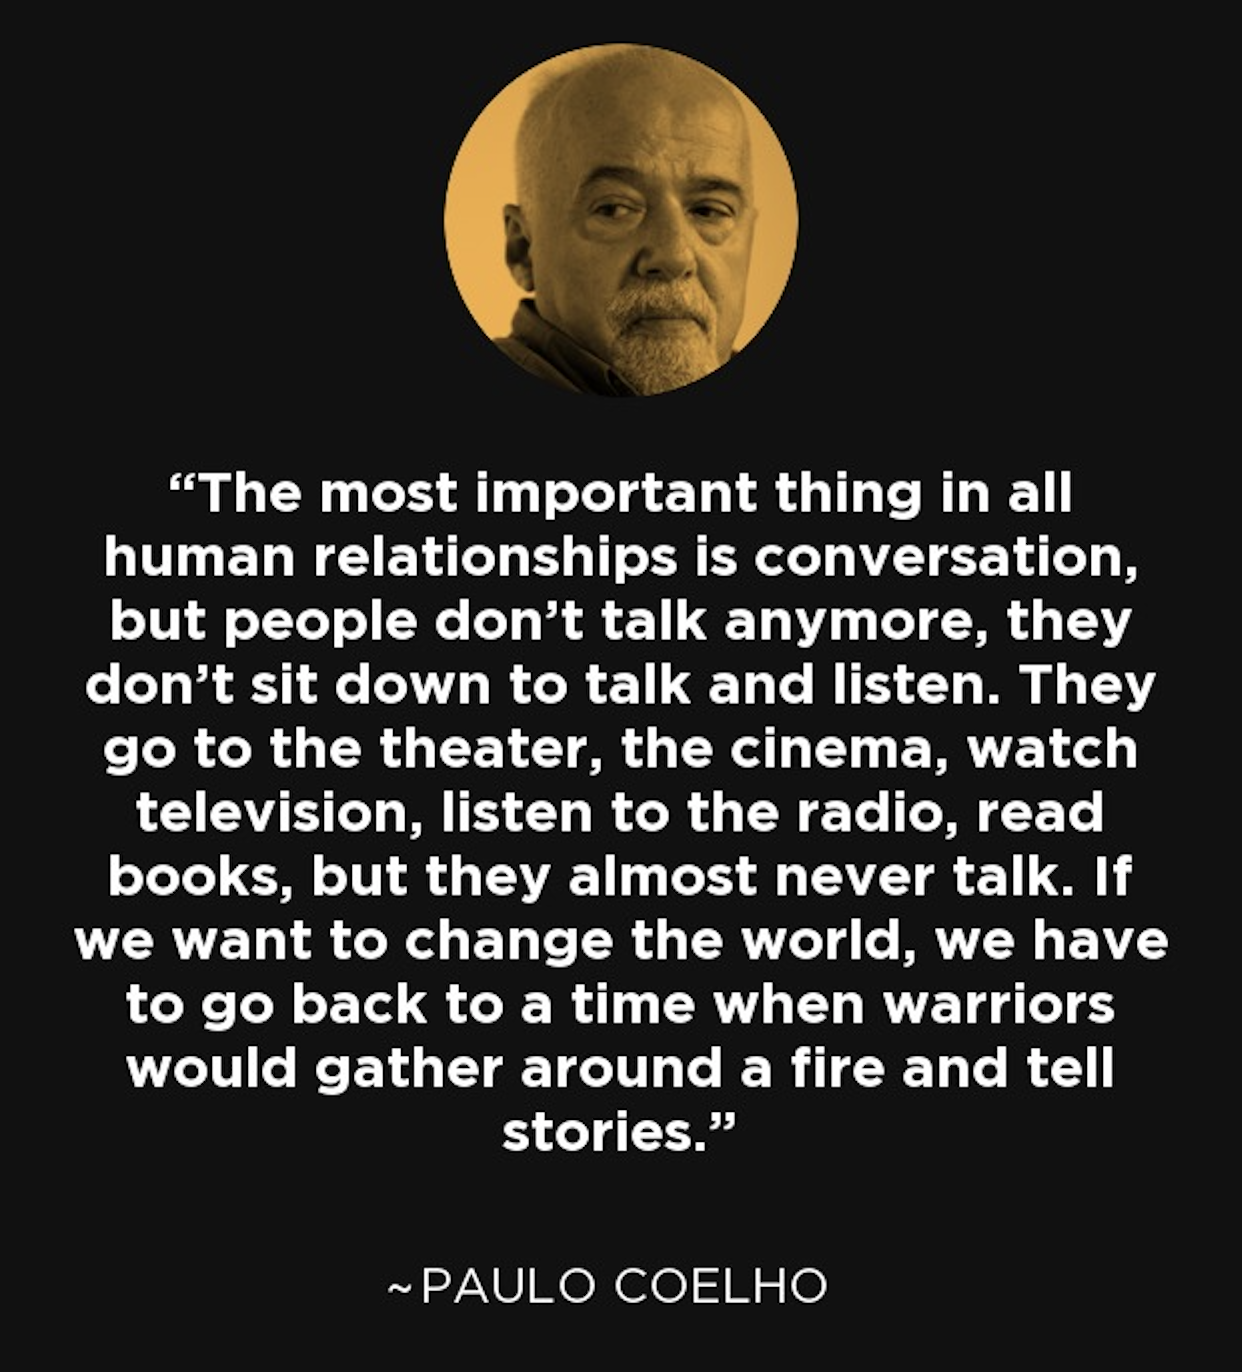 """If we want to change the world, we have to go back to a time when warriors would gather around a fire and tell stories"" – Paulo Coelho [1242 × 1372]"